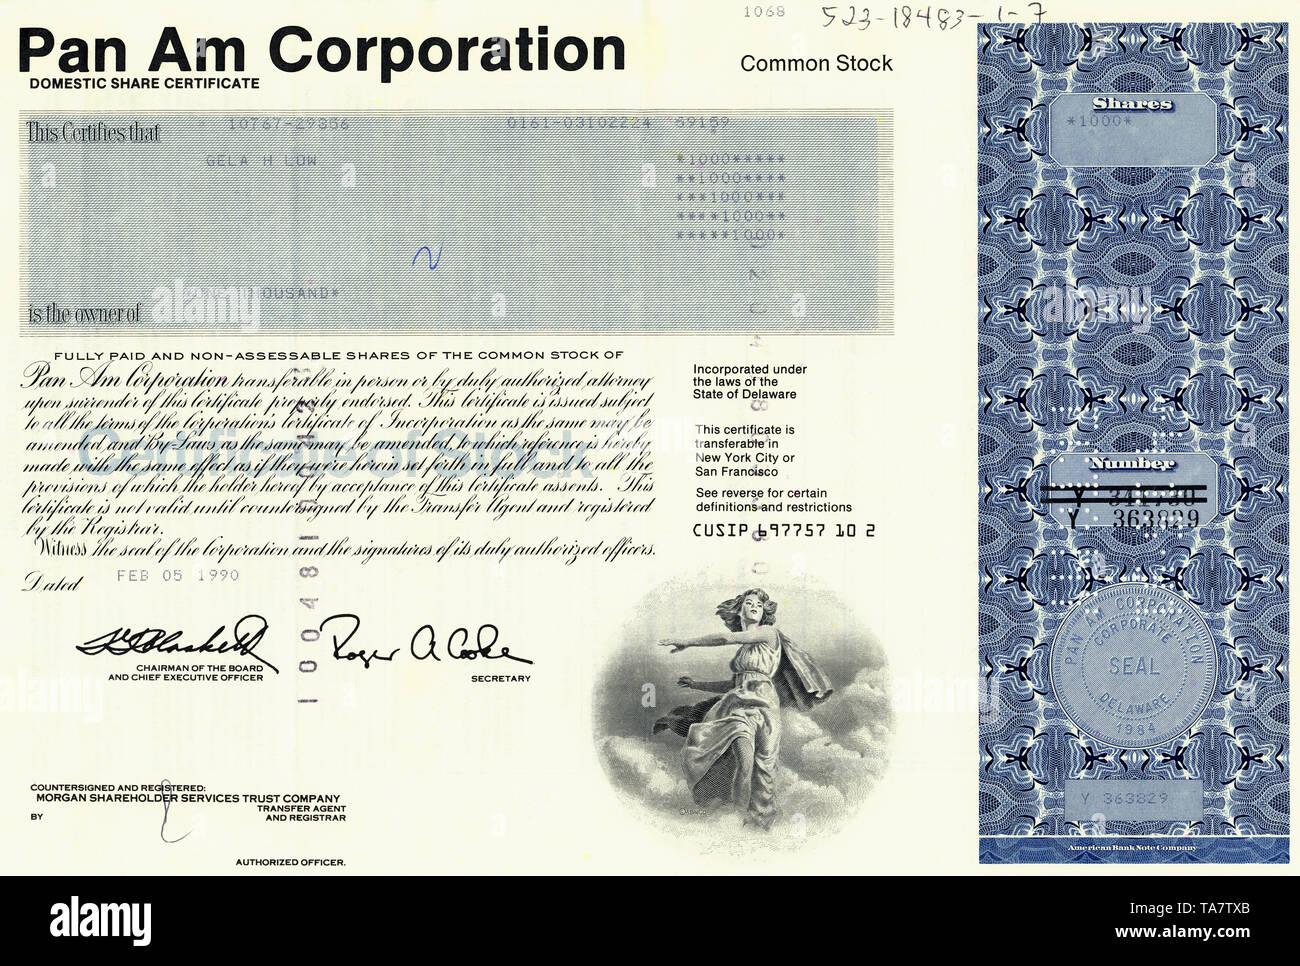 Historical stock certificate, American Airlines, Pan Am, Pan Am Corporation, 1990, Delaware, USA, Historische Aktie, Pan Am Corporation, 1990, Delaware, USA - Stock Image